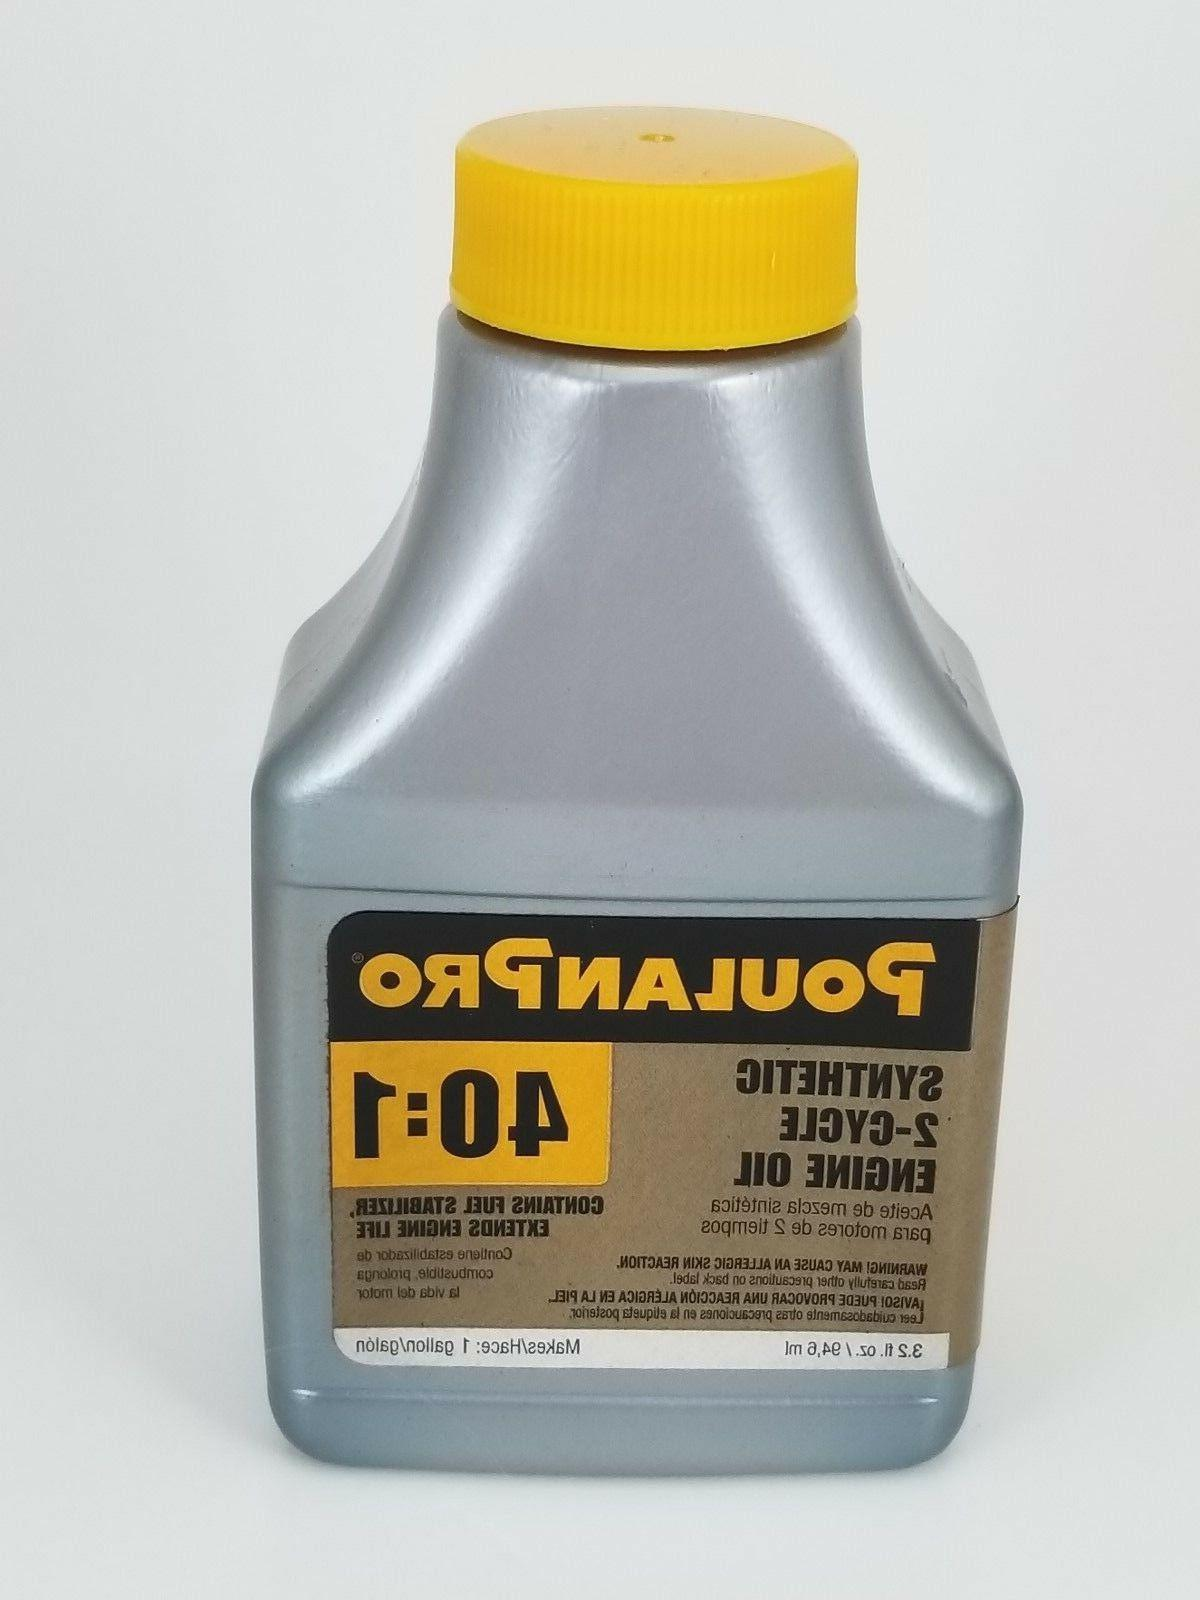 40 1 synthetic oil mix 3 2